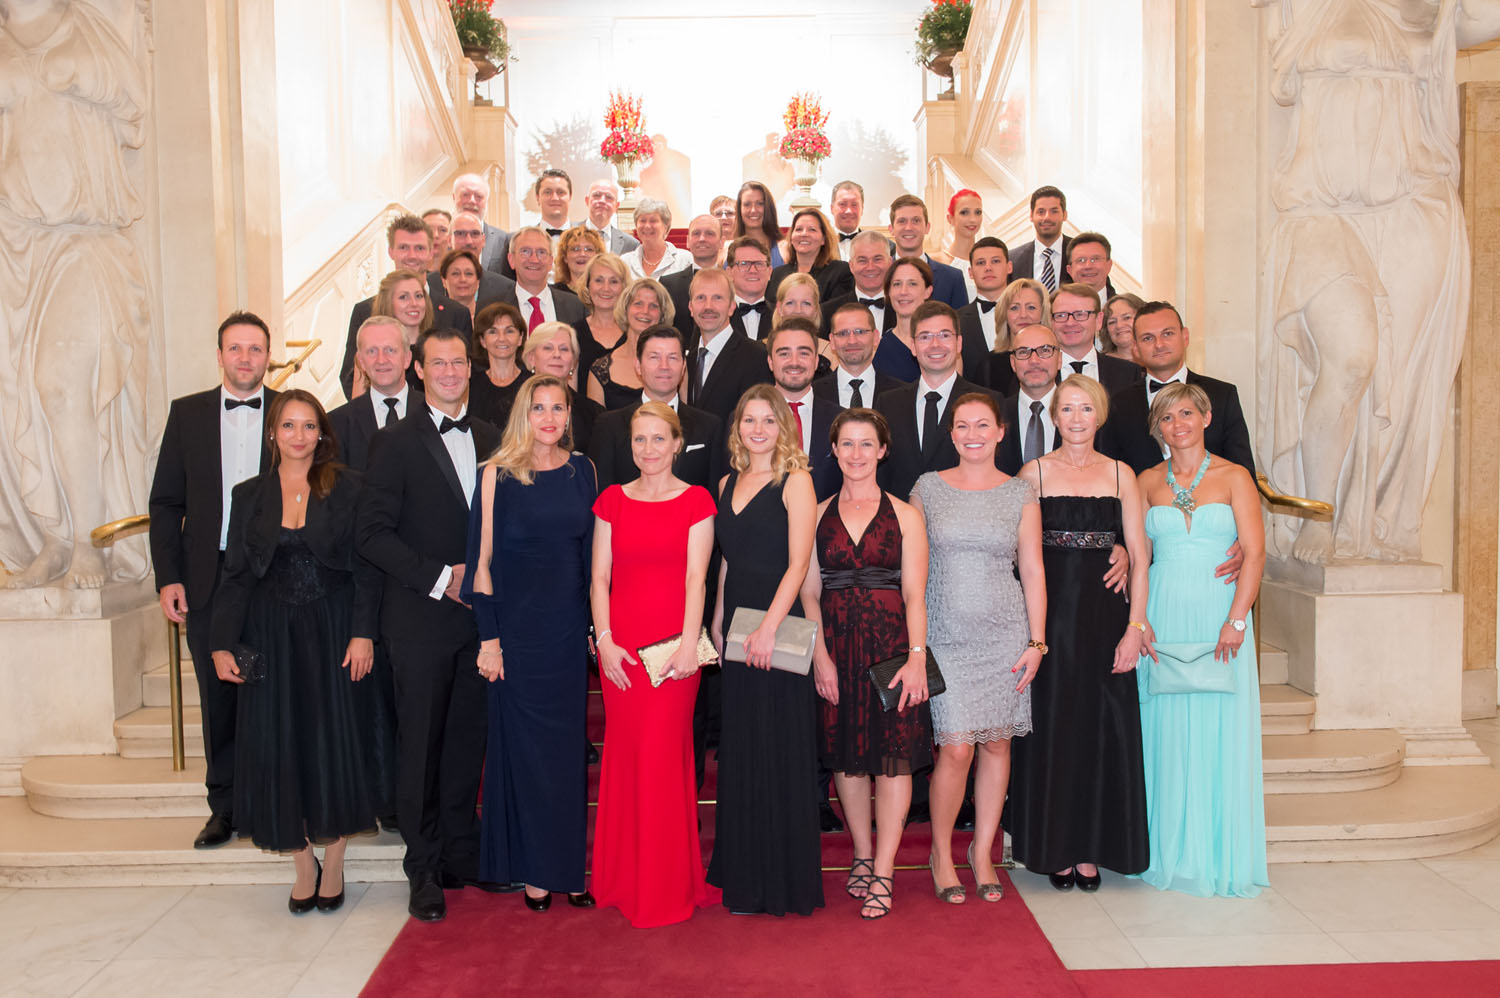 Fujitsu 146 20160911 1 - Gala Dinner At The Hofburg Palace Vienna